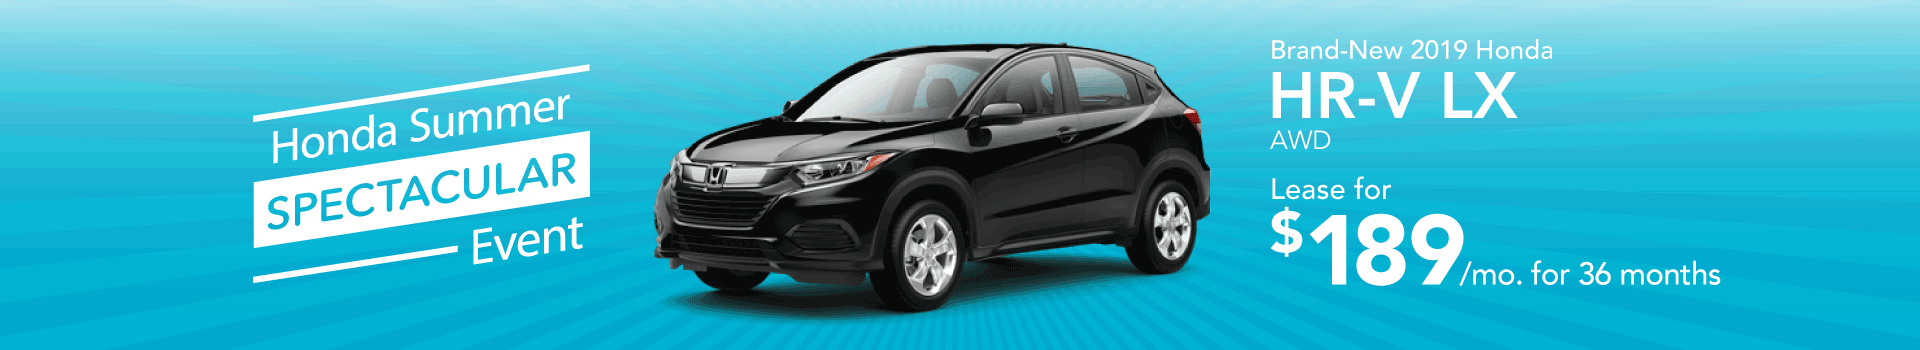 Berlin City Honda >> Portland Honda Dealer In South Portland Me New And Used Honda